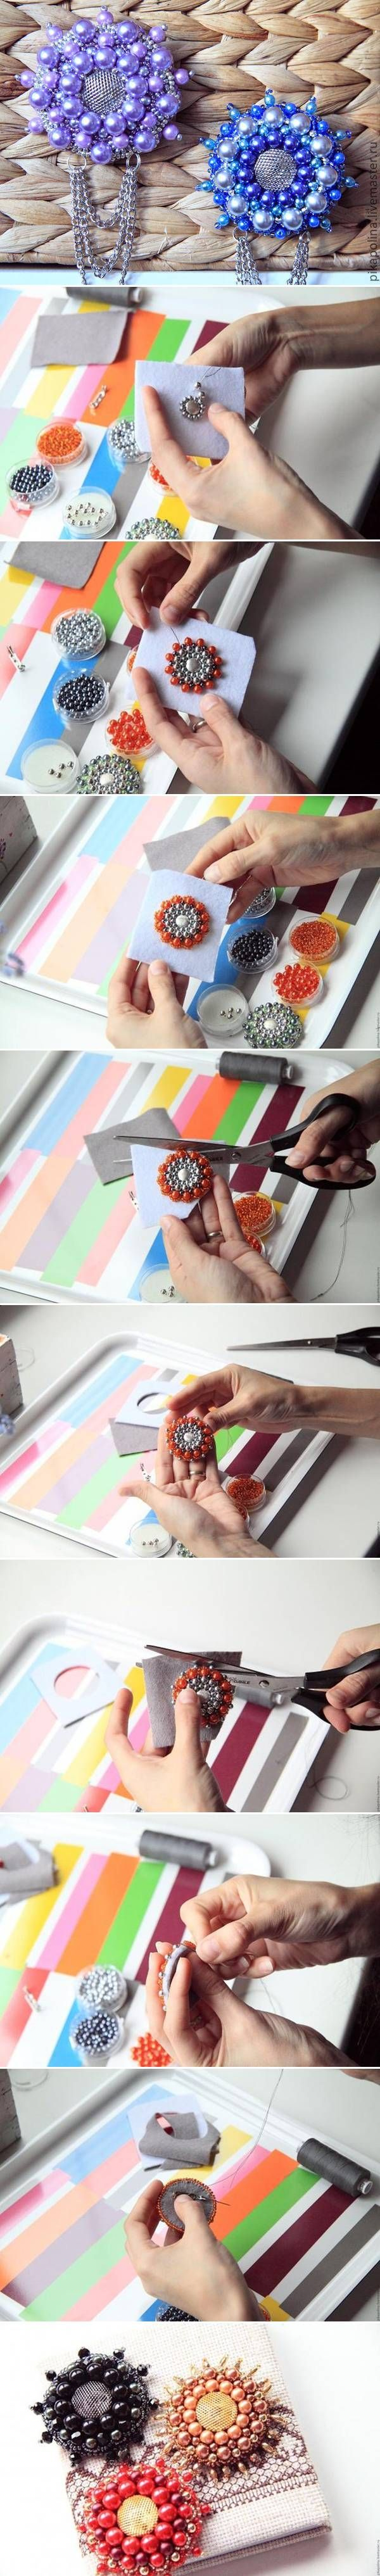 DIY Beads Flower Brooch DIY Projects